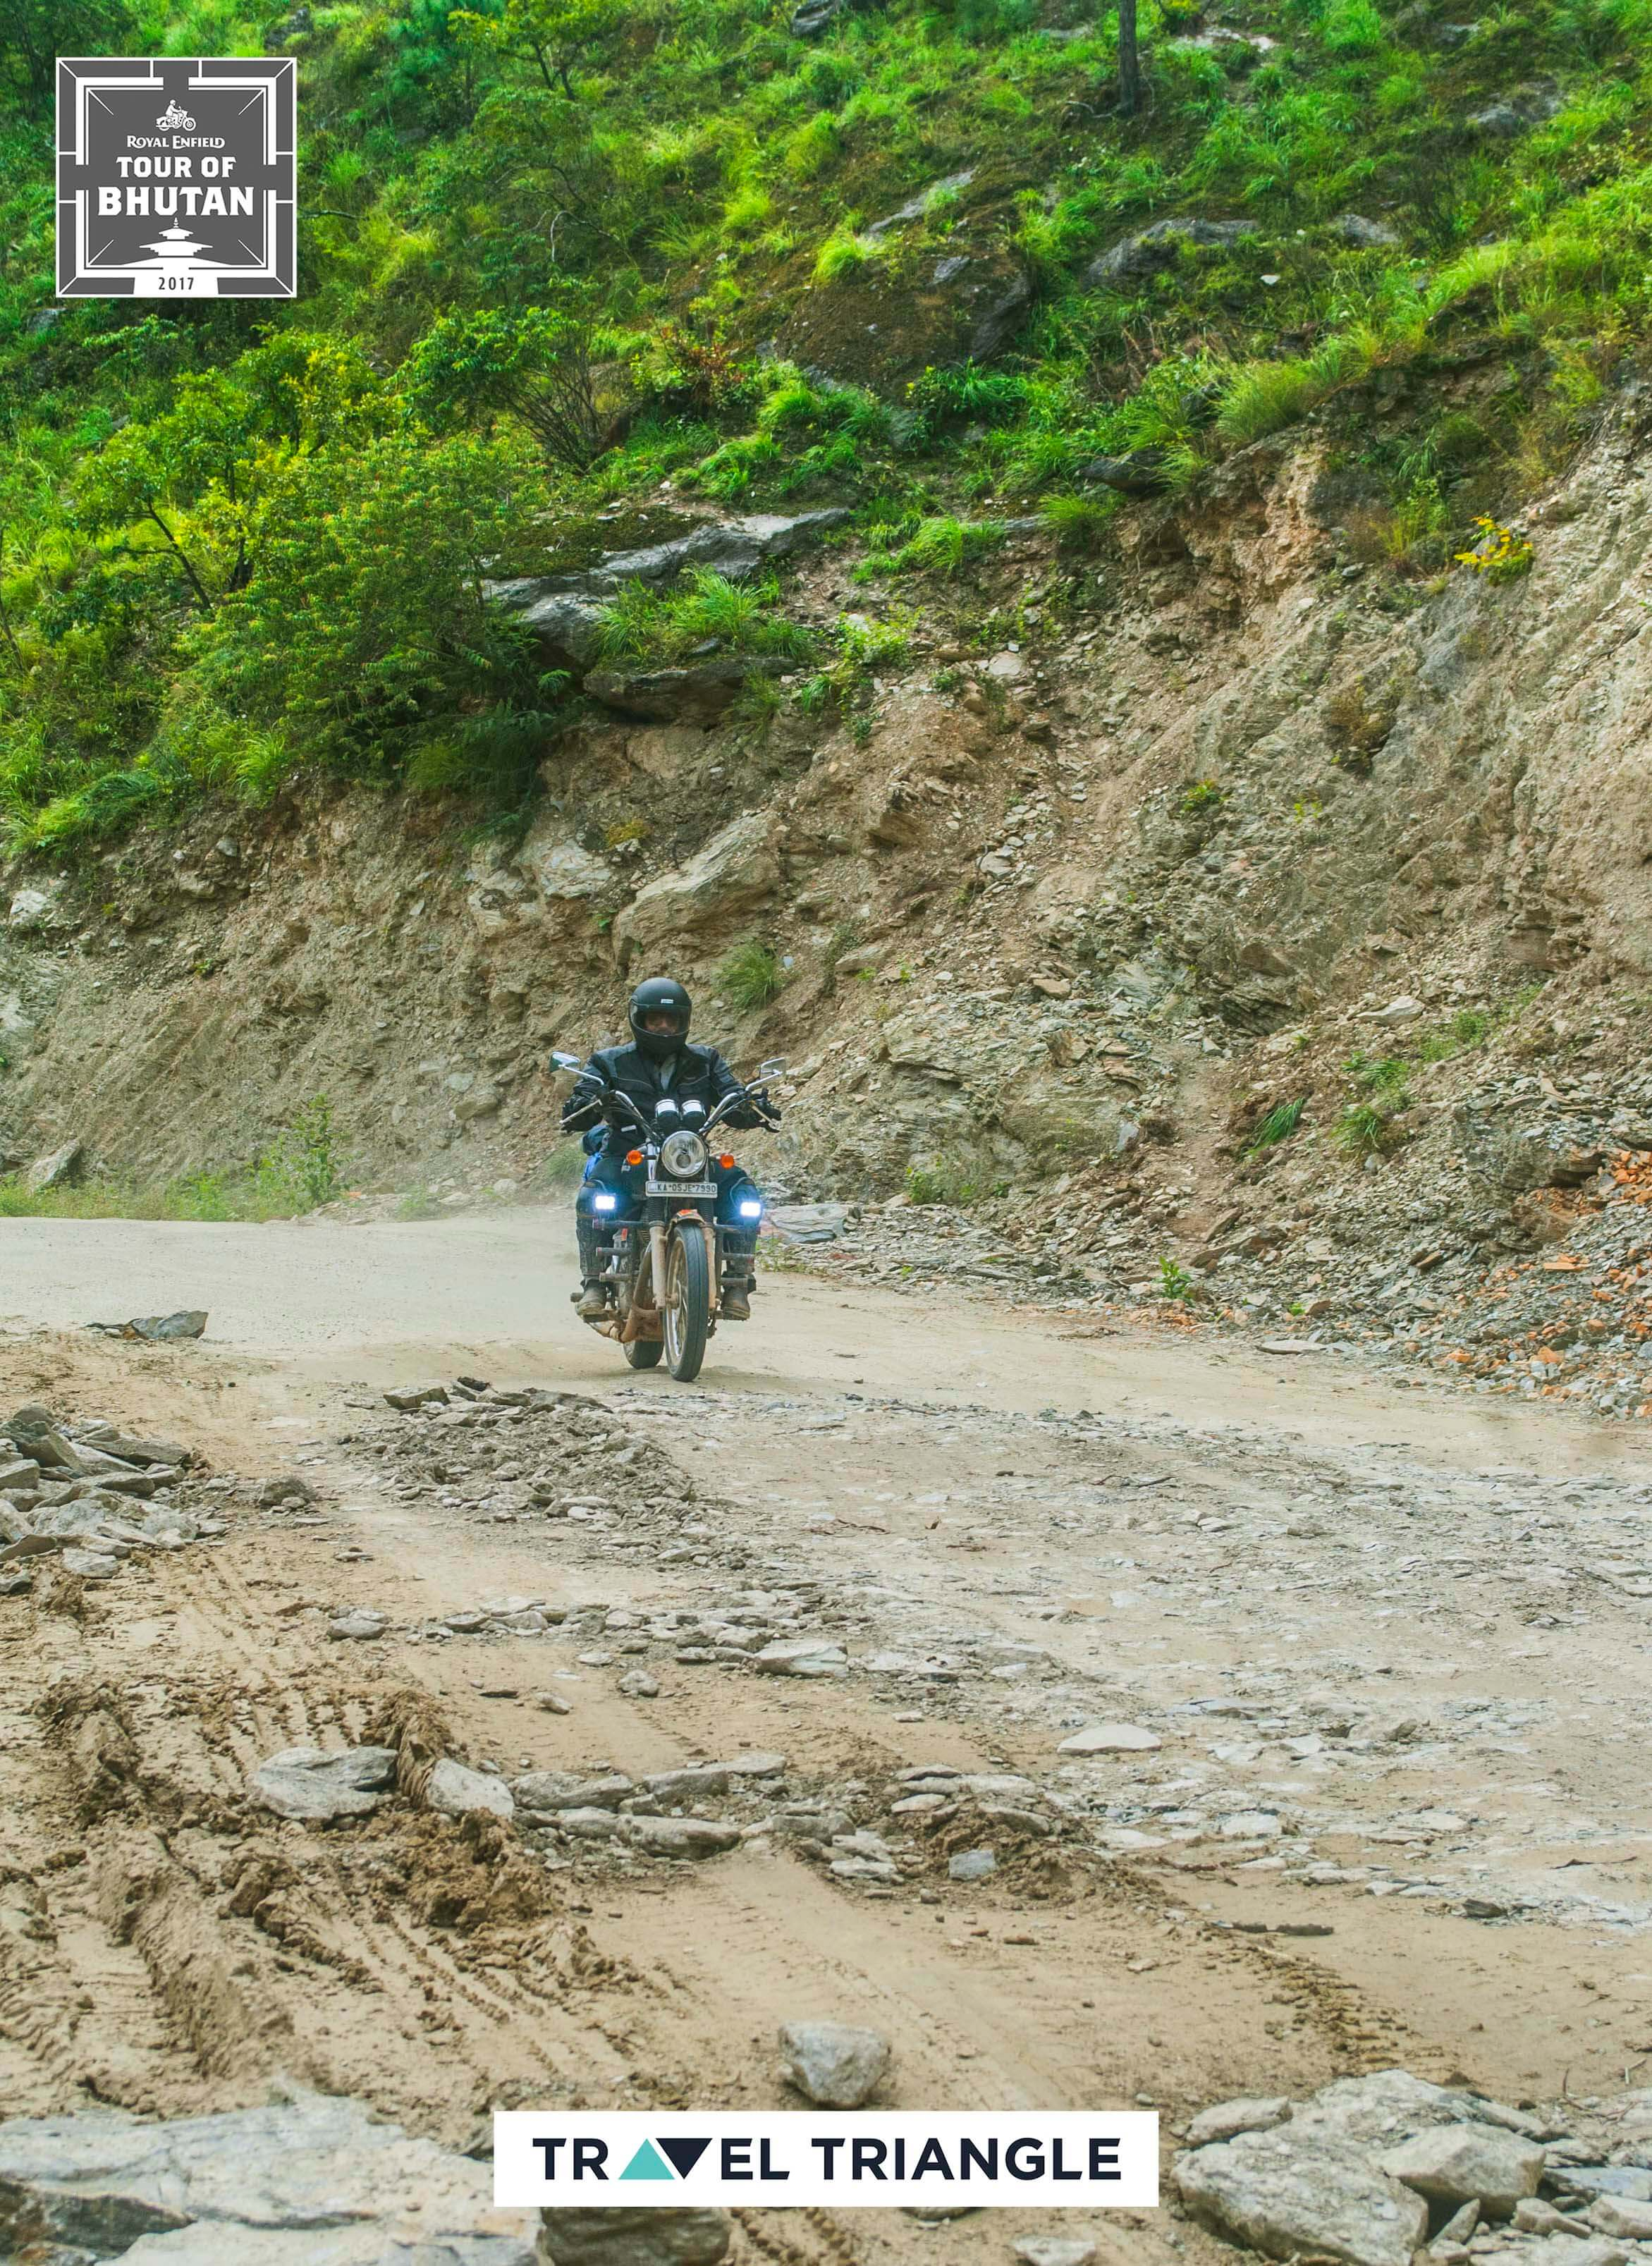 Mongar to Trashigang: riding through curvy roads